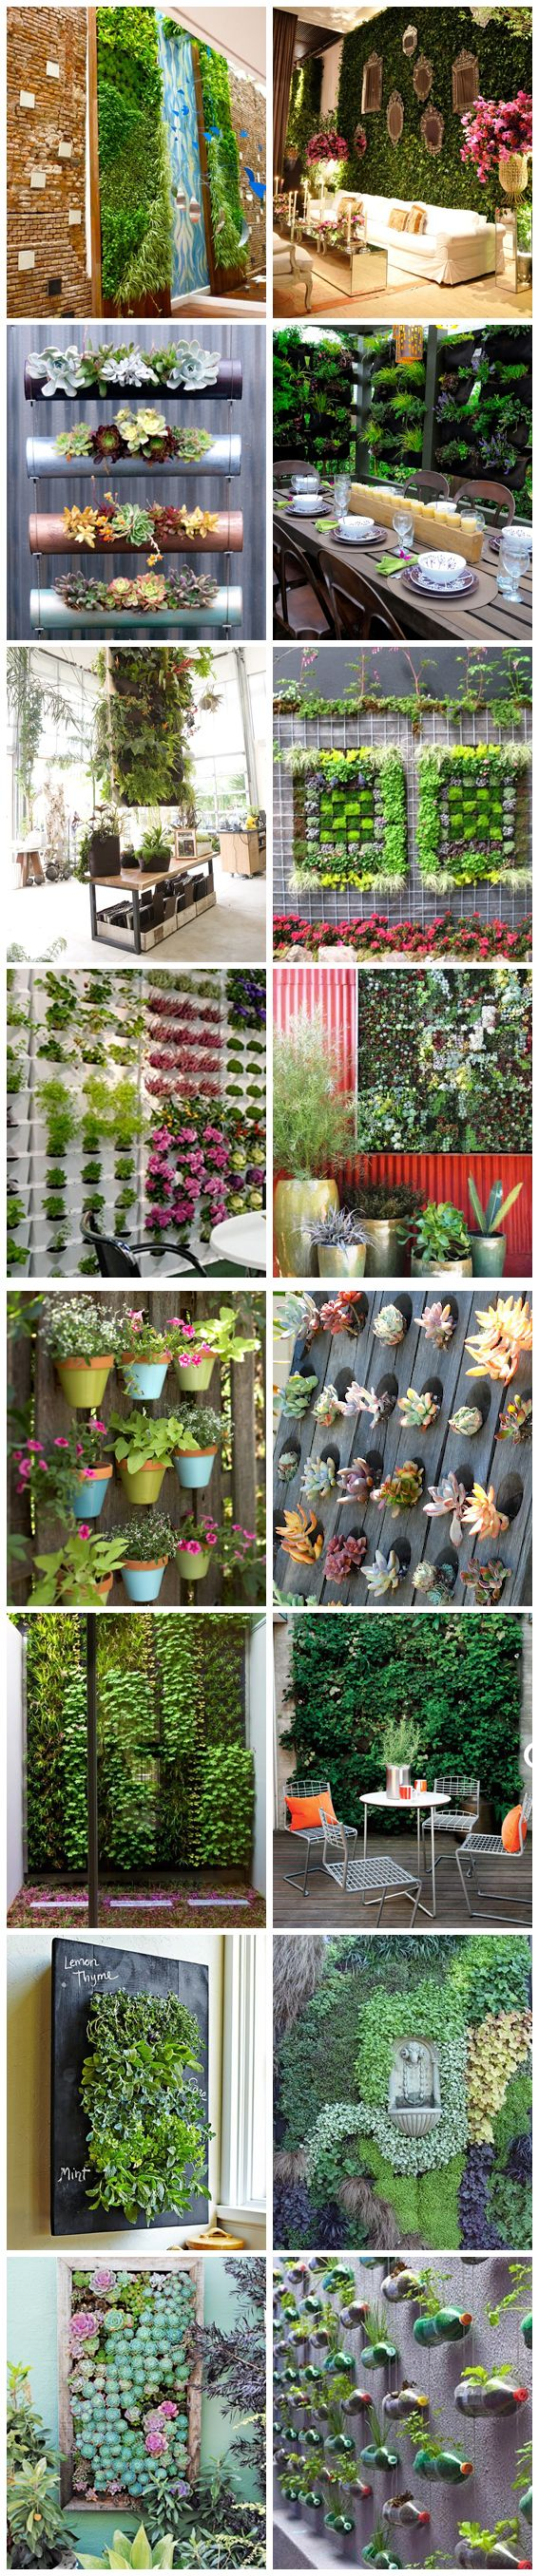 decoracao jardim vertical : Jardim vertical - Reciclar e Decorar : decora??o com ...